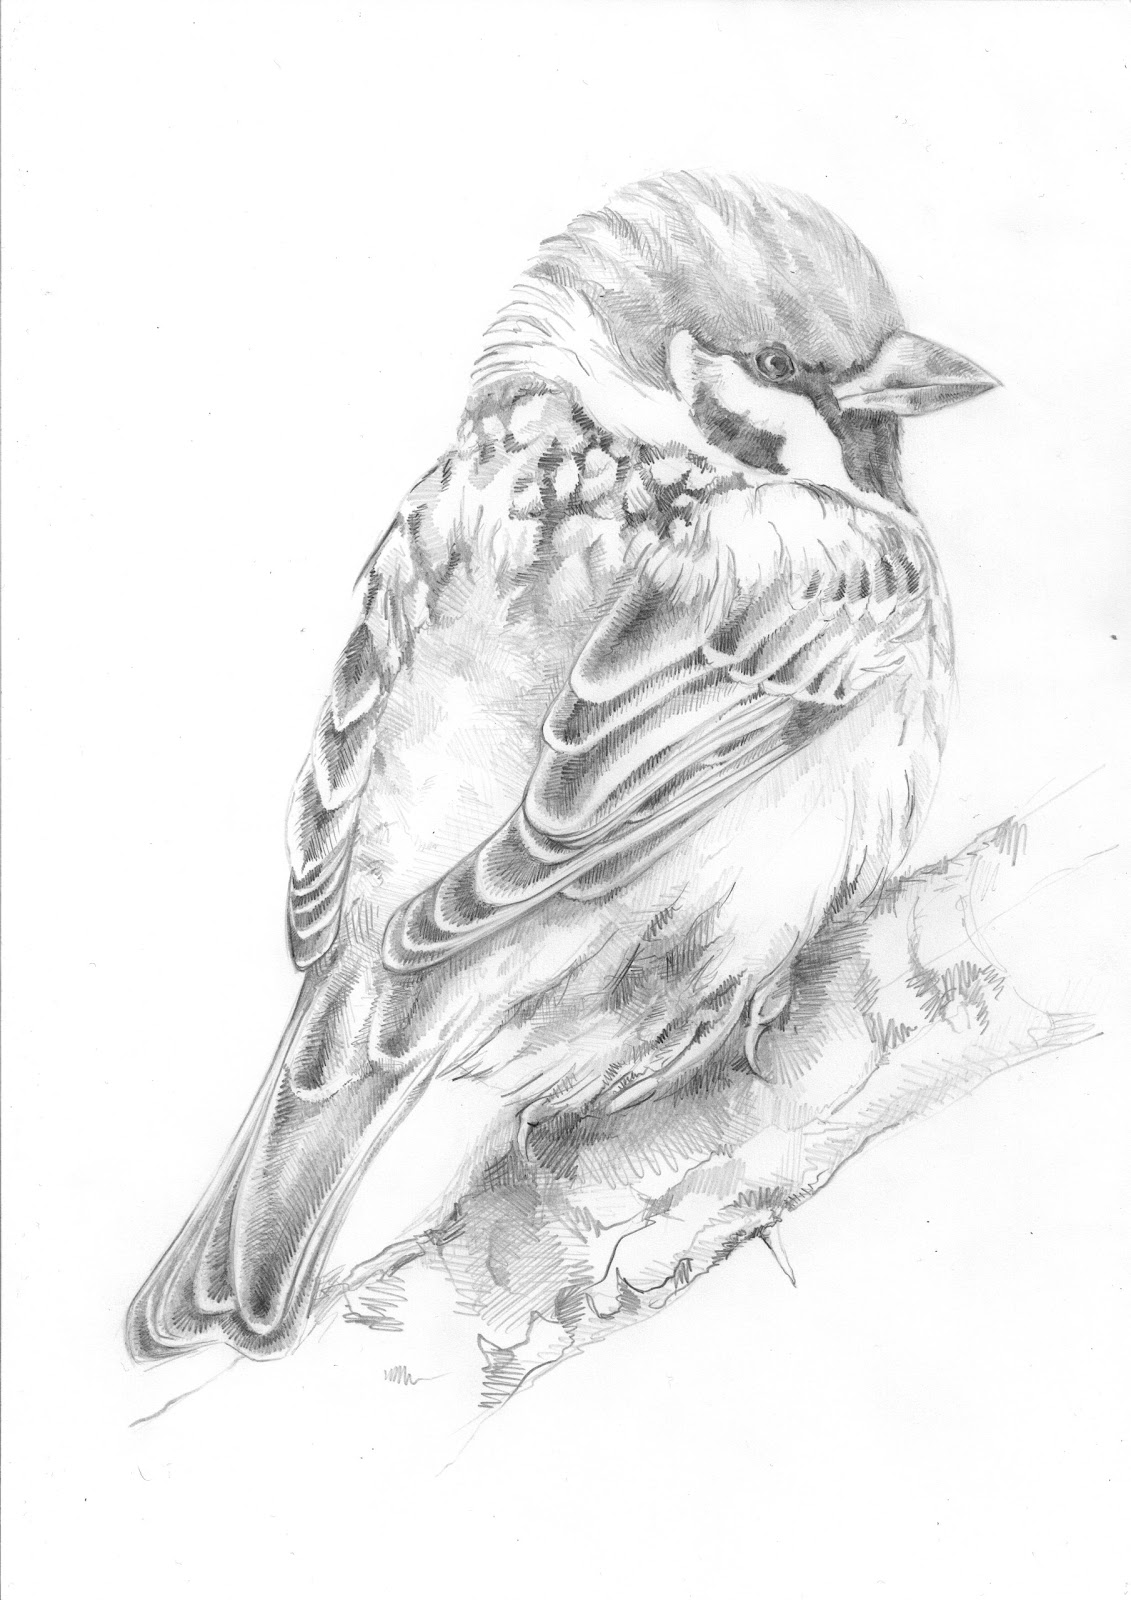 sparrow drawings my sparrow drawing sparrow drawing native tattoos drawings sparrow